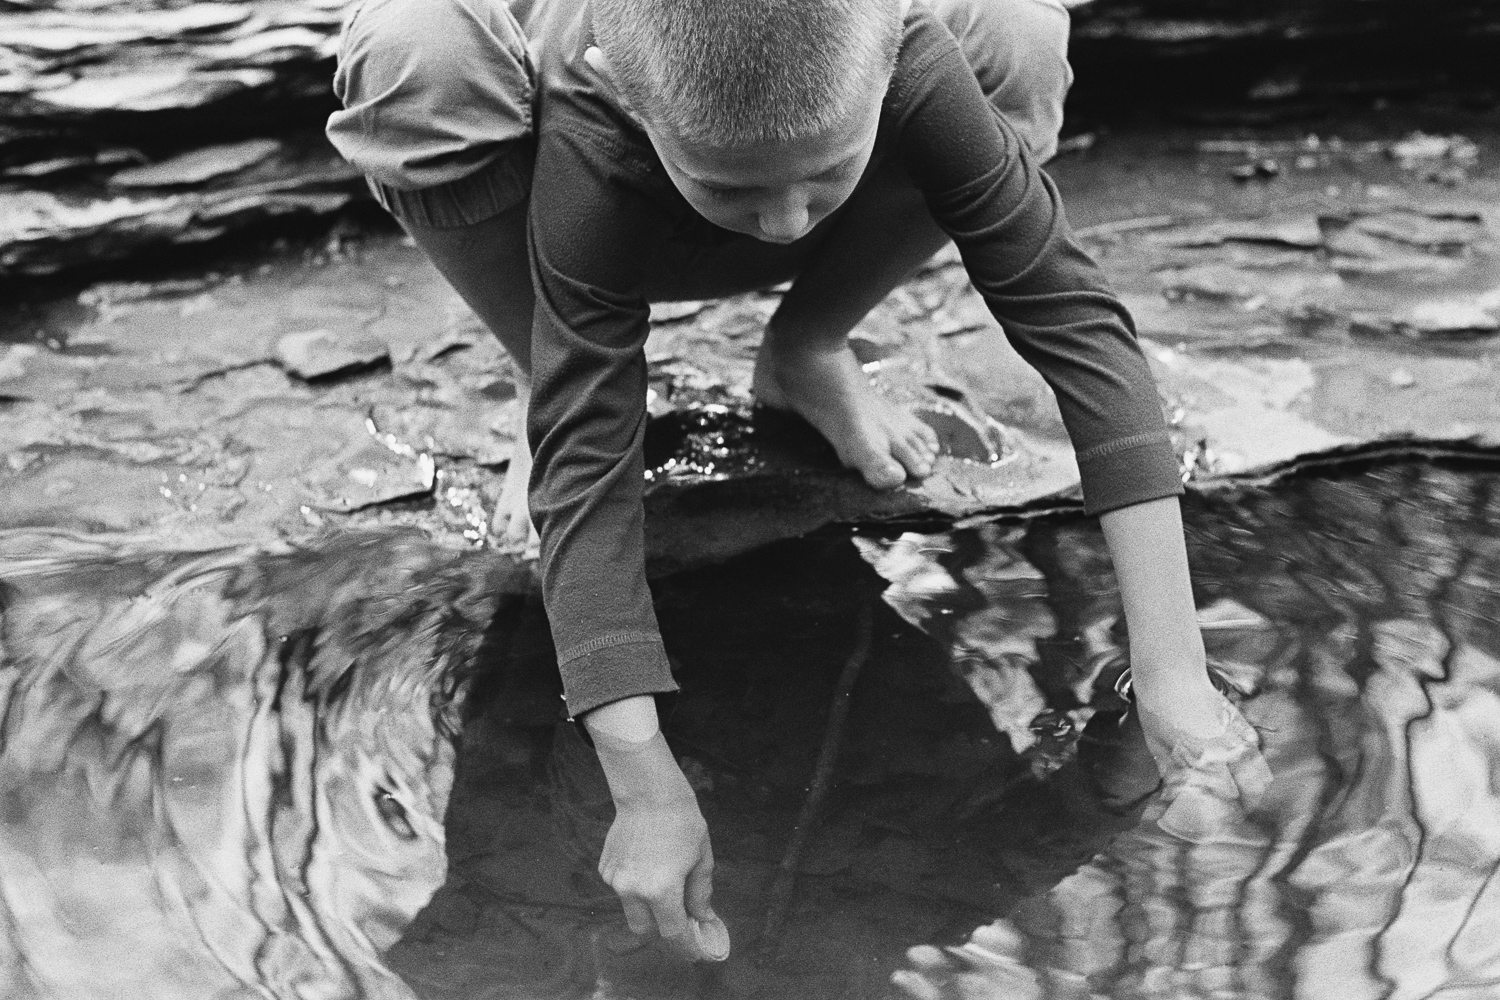 ^ Convinced he was going to catch a fish with my film canister.